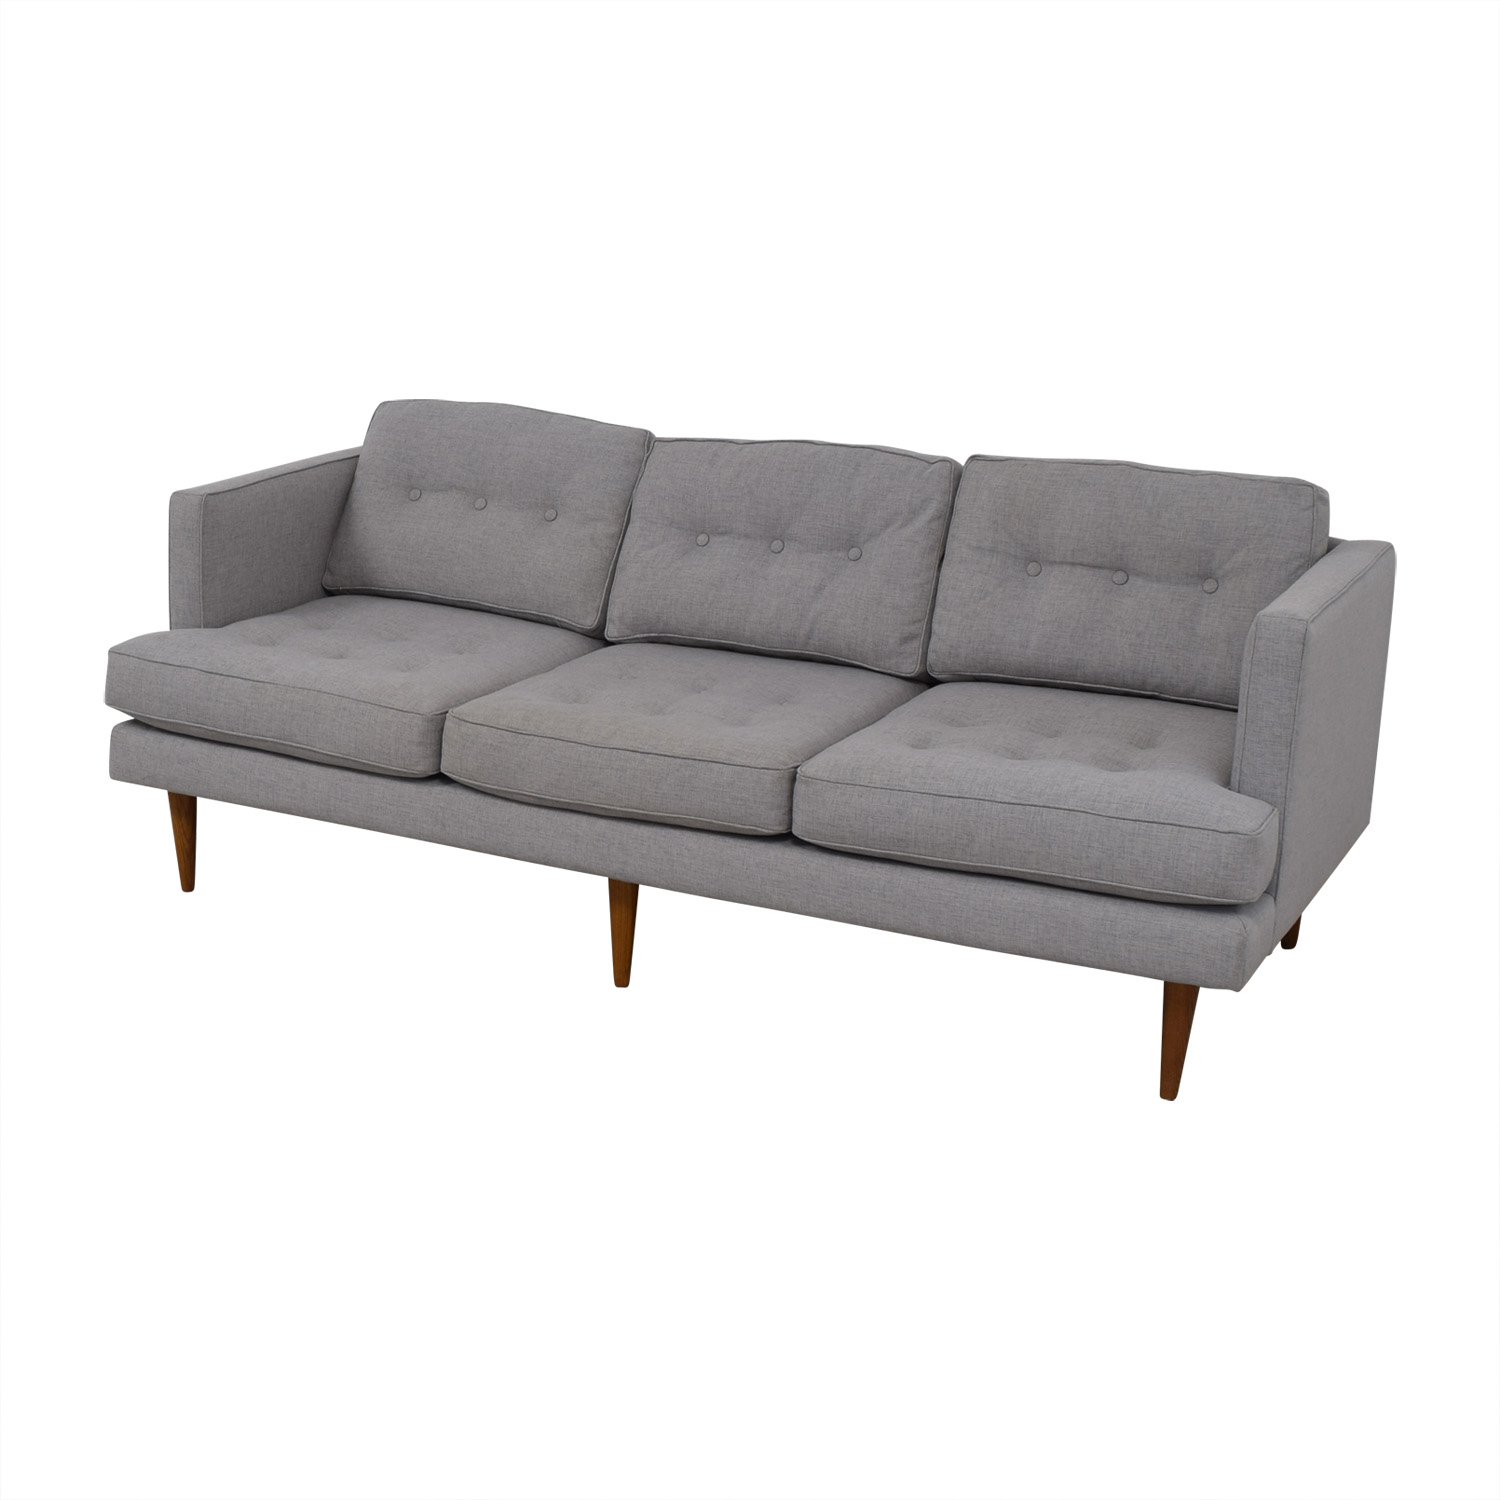 West Elm West Elm Peggy Feather Gray Heathered Crosshatch Tufted Sofa on sale